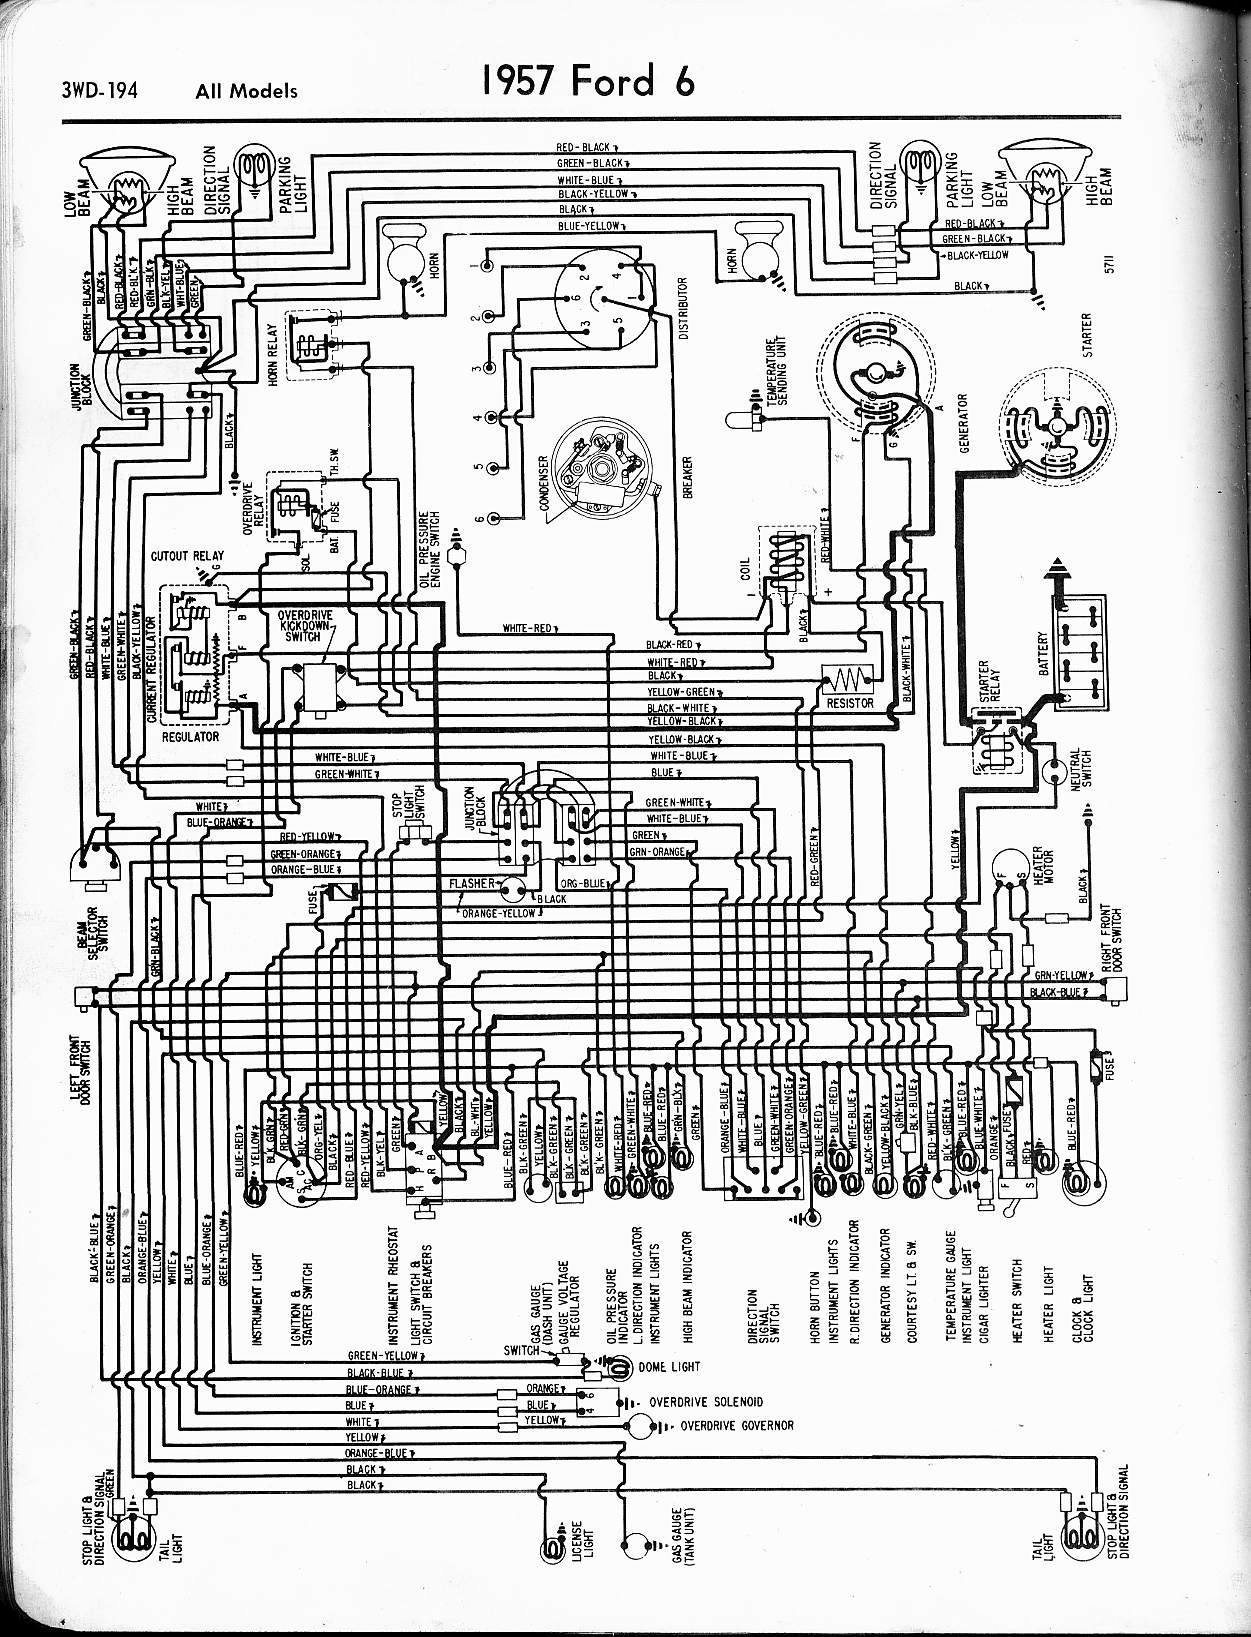 1957 Ford Power Window Wiring Diagram - Library Of Wiring Diagram •